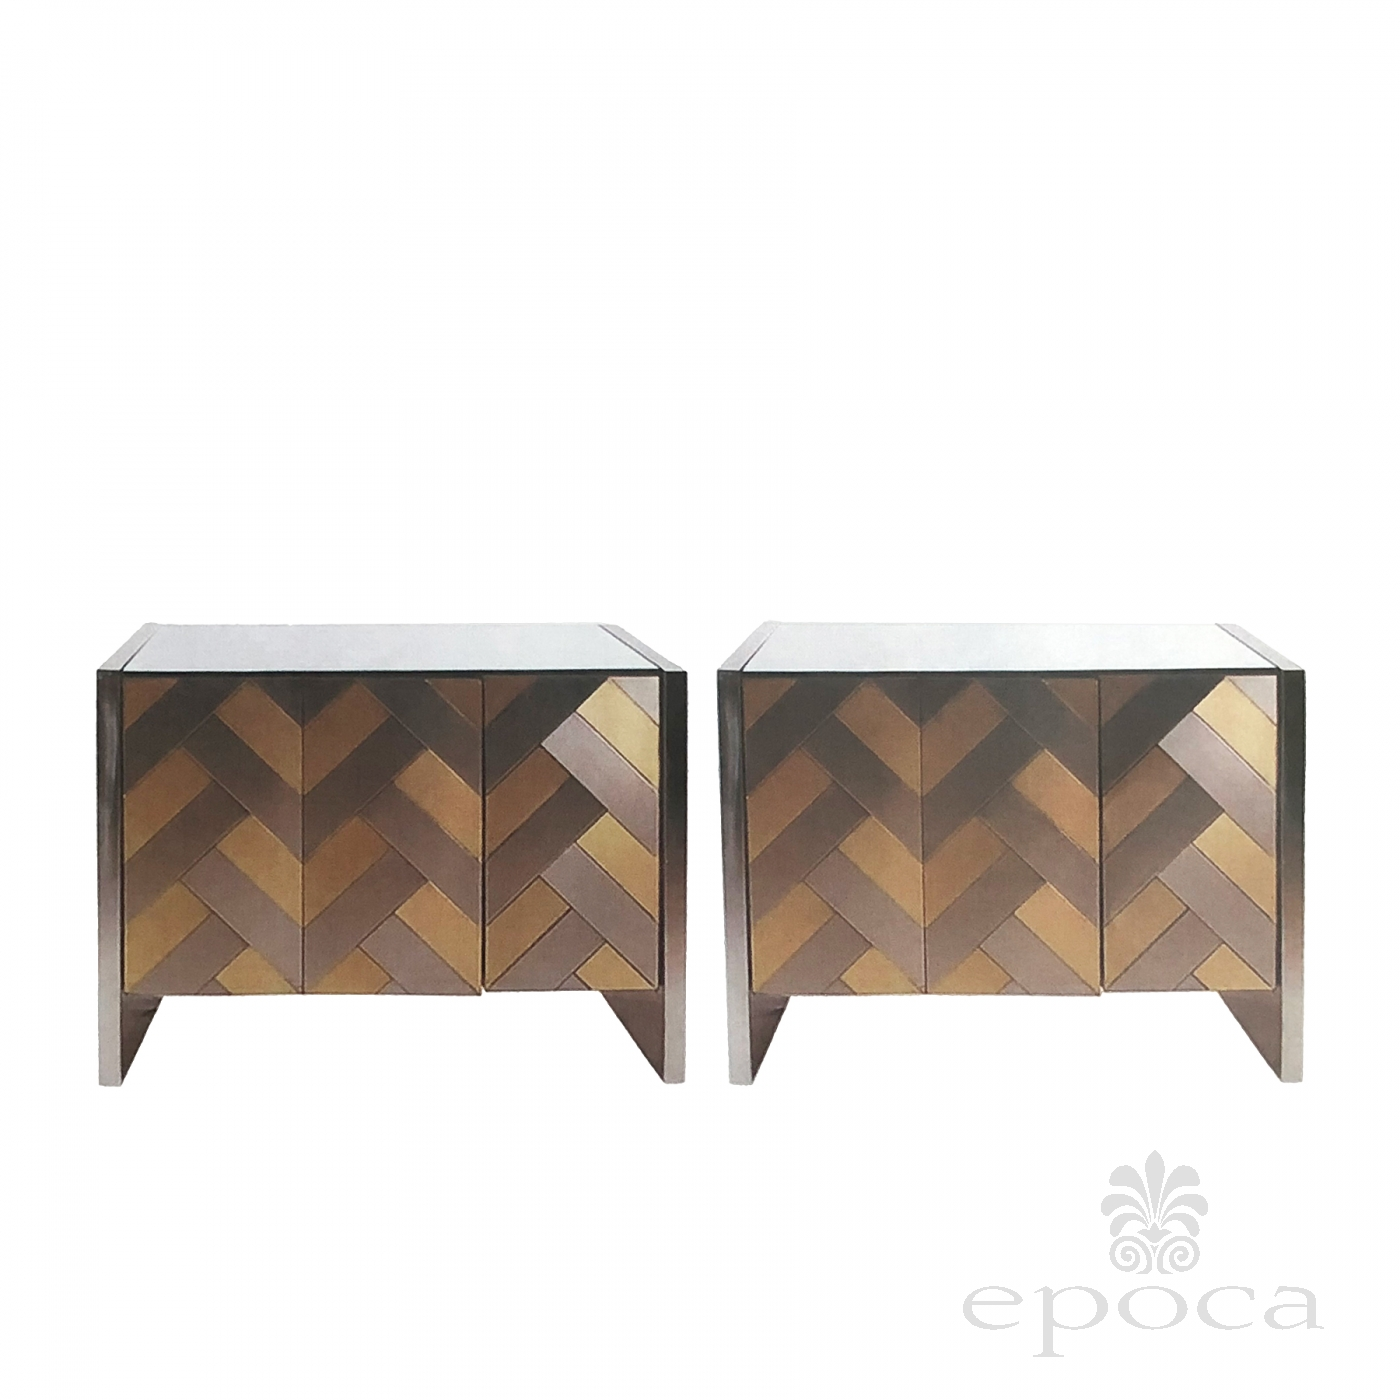 Stylish Pair Of Hollywood Regency Satin Brass And Polished Steel Cabinets  Or Chests By Ello At